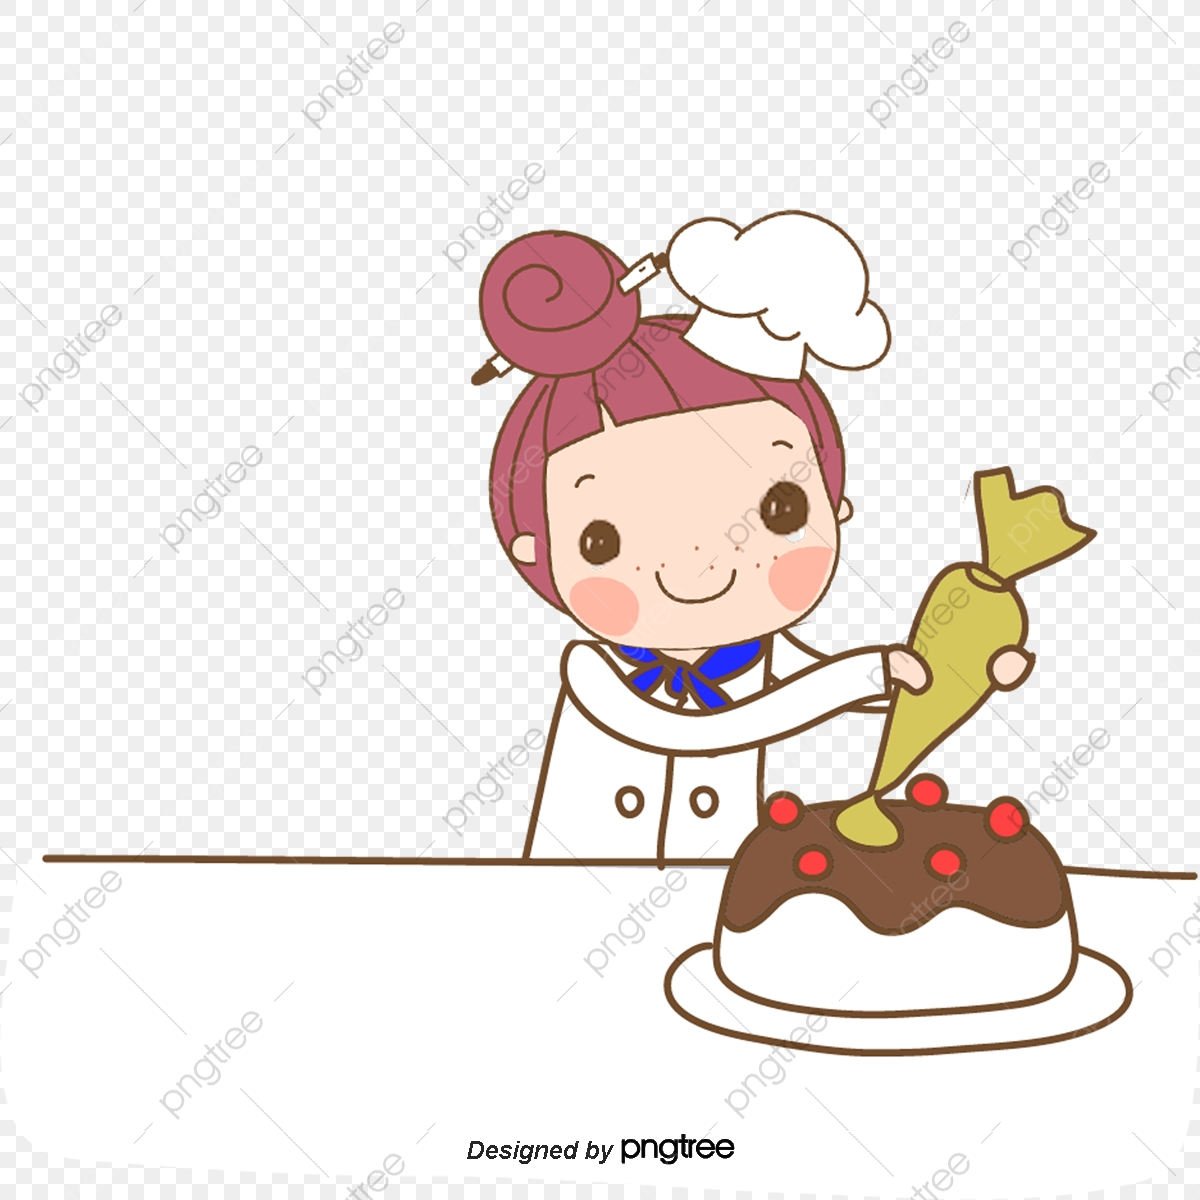 png freeuse stock Make clipart cake. A girl vector decorating.